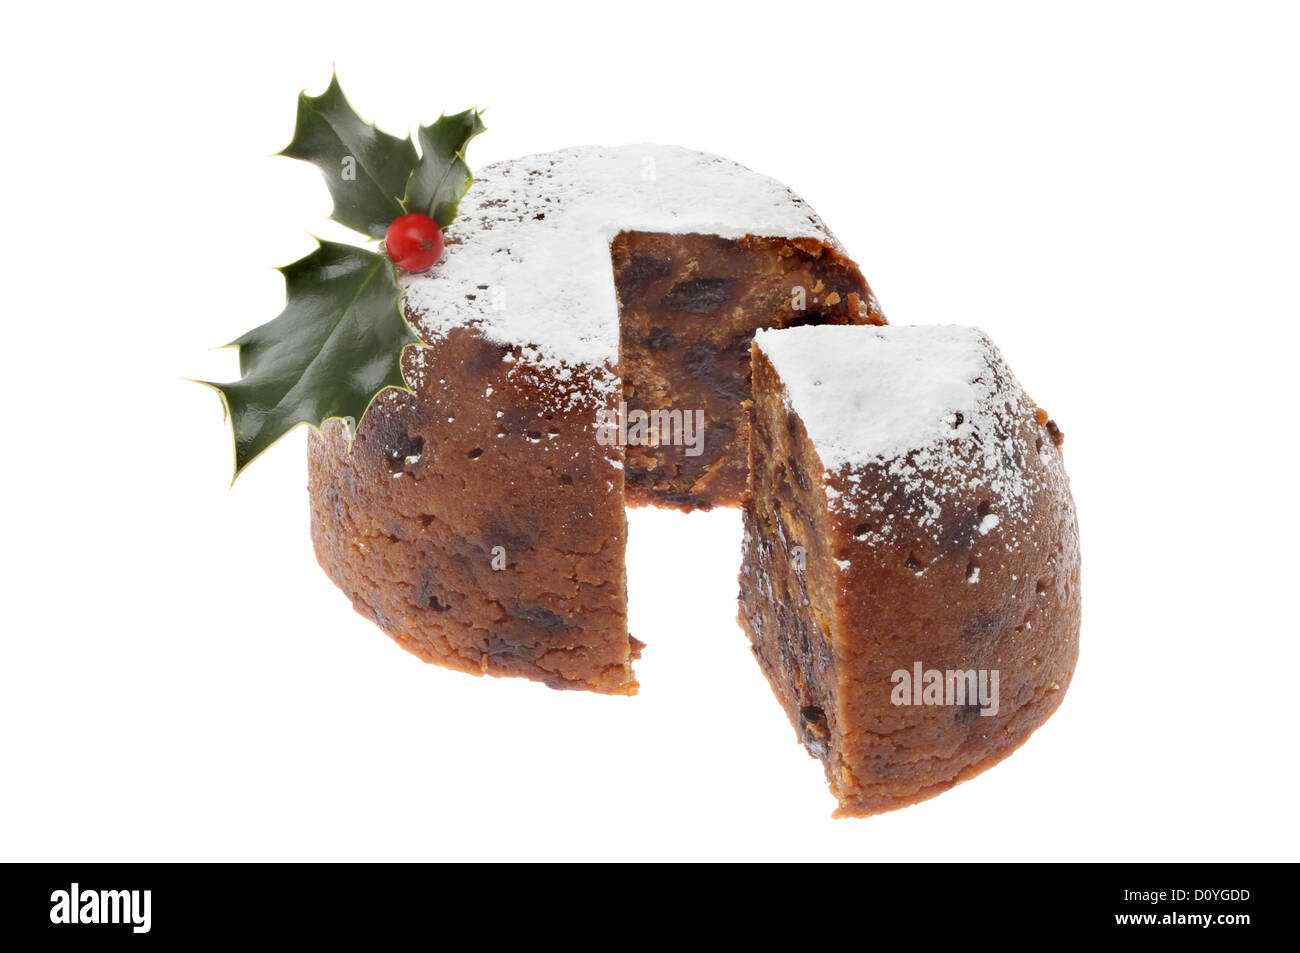 Christmas pudding dusted with icing sugar and decorated with holly with a slice cut out isolated against white - Stock Image